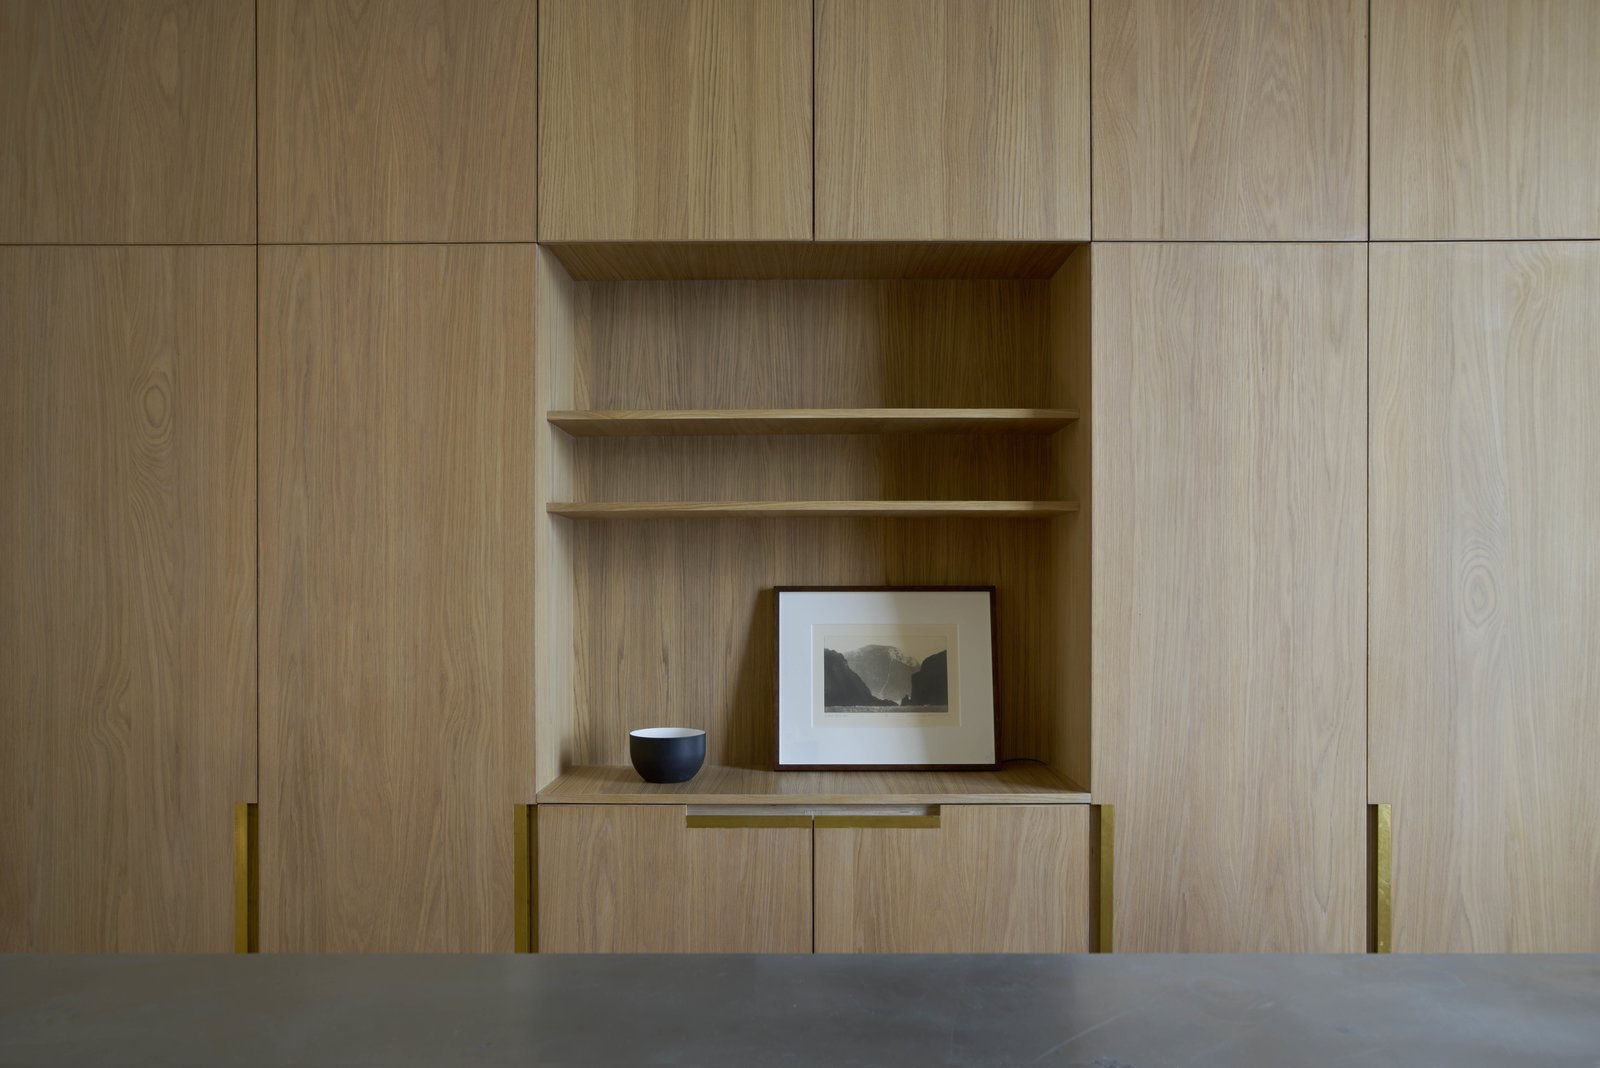 Photo 9 of 10 in A Once-Derelict London House Restored With Modern Elegance